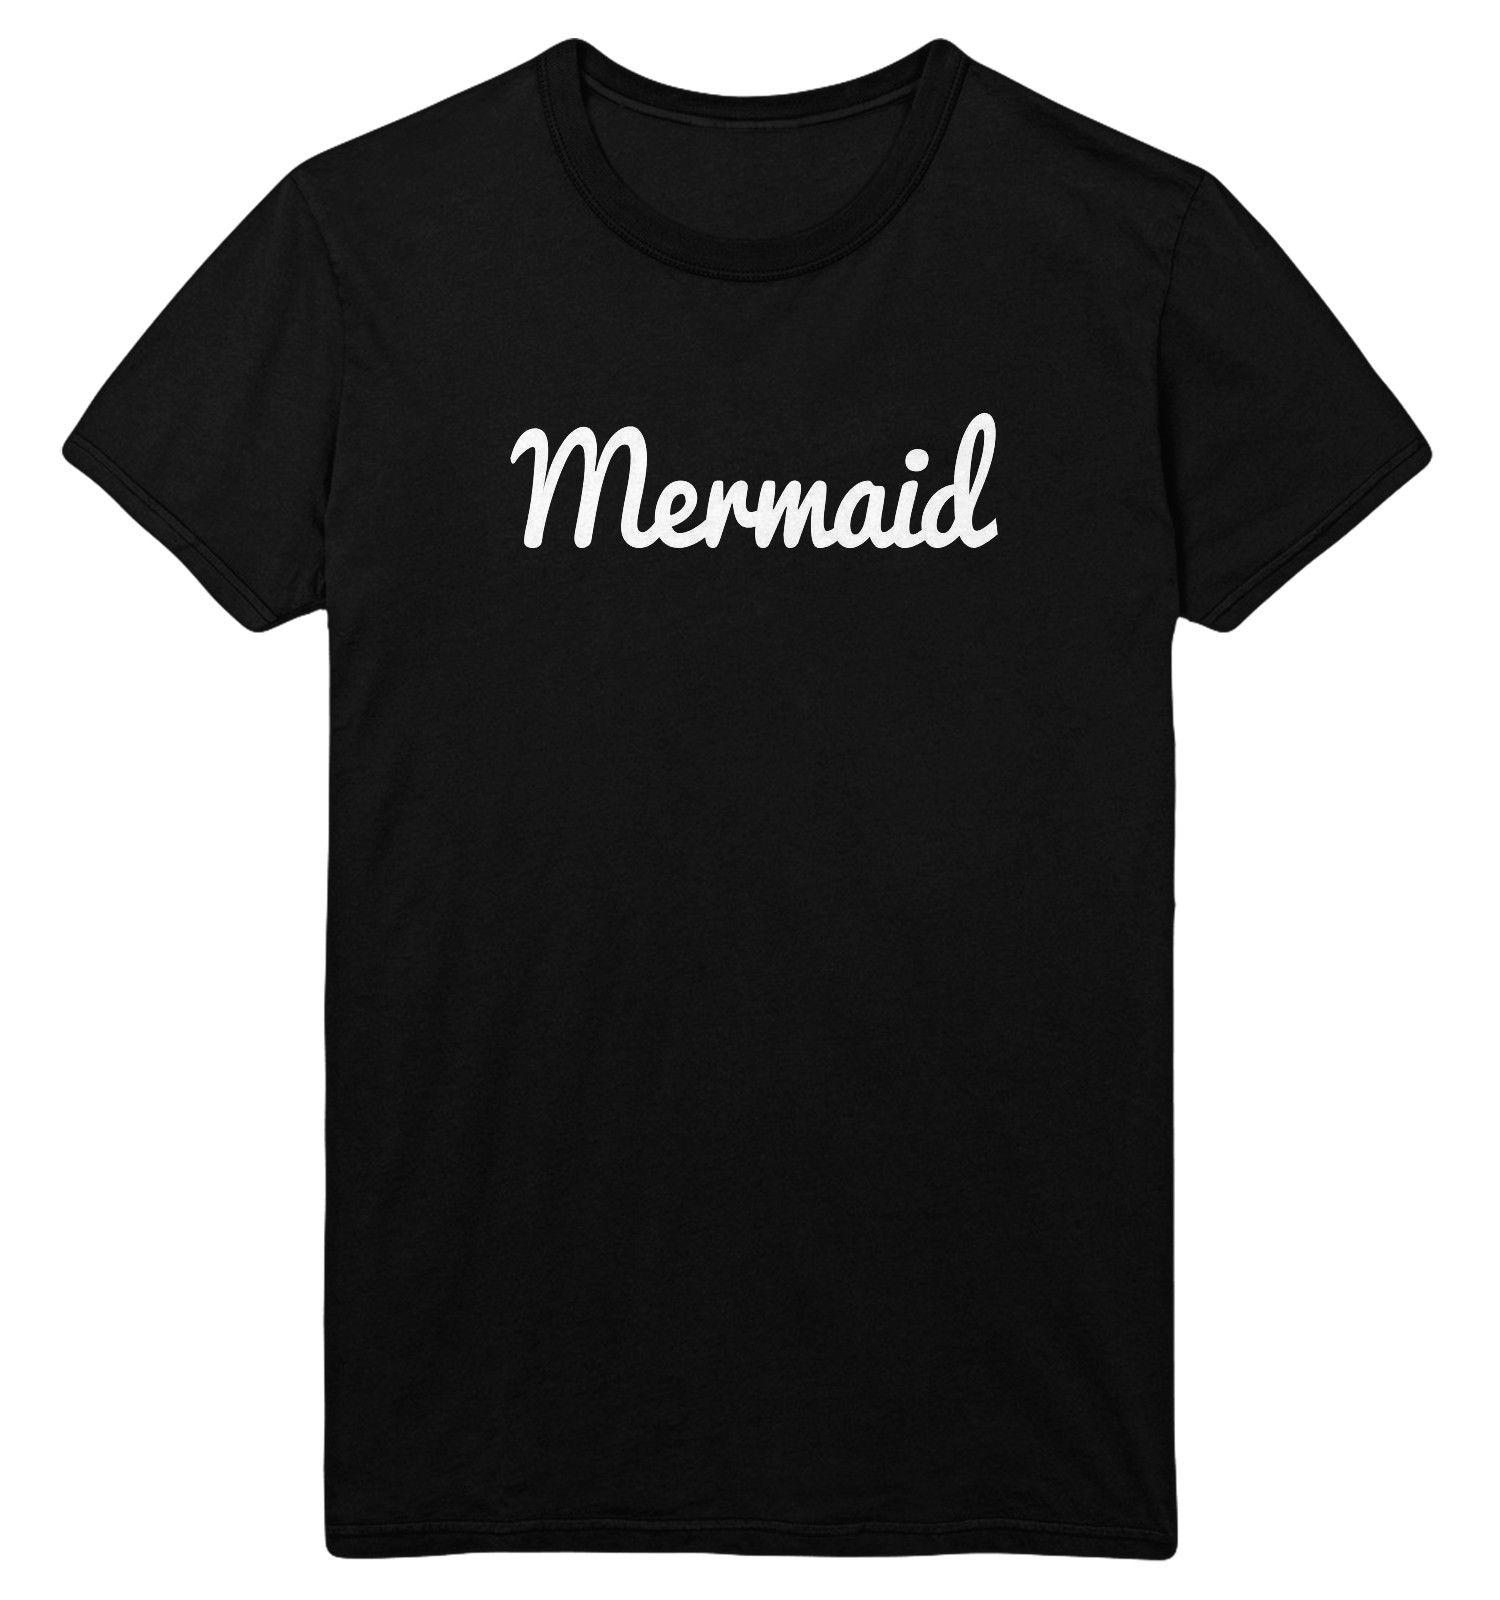 3b6a95ee Mermaid Medium Unisex Black T Shirt Slogan Sassy SALE CLEARANCE A2 Funny  Unisex Tee Shirt Online Cartoon T Shirts From Stshirt, $12.96| DHgate.Com